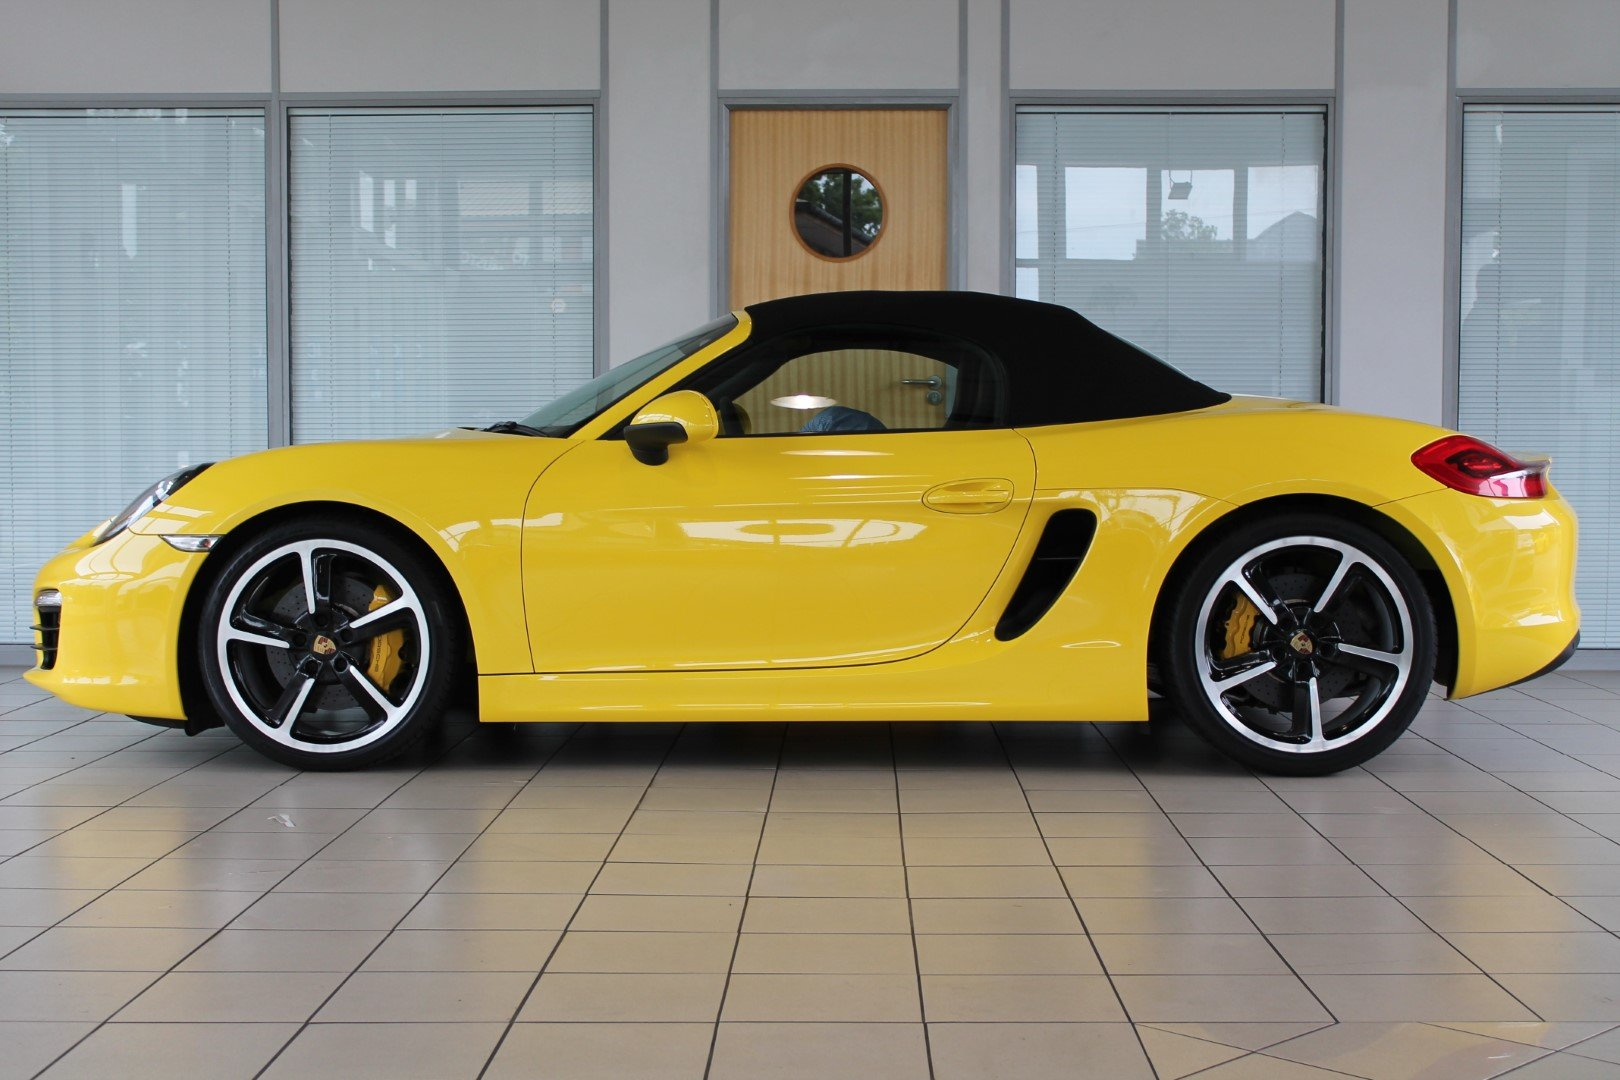 2015 Boxster (981) 3.4 'S' Manual For Sale (picture 2 of 6)